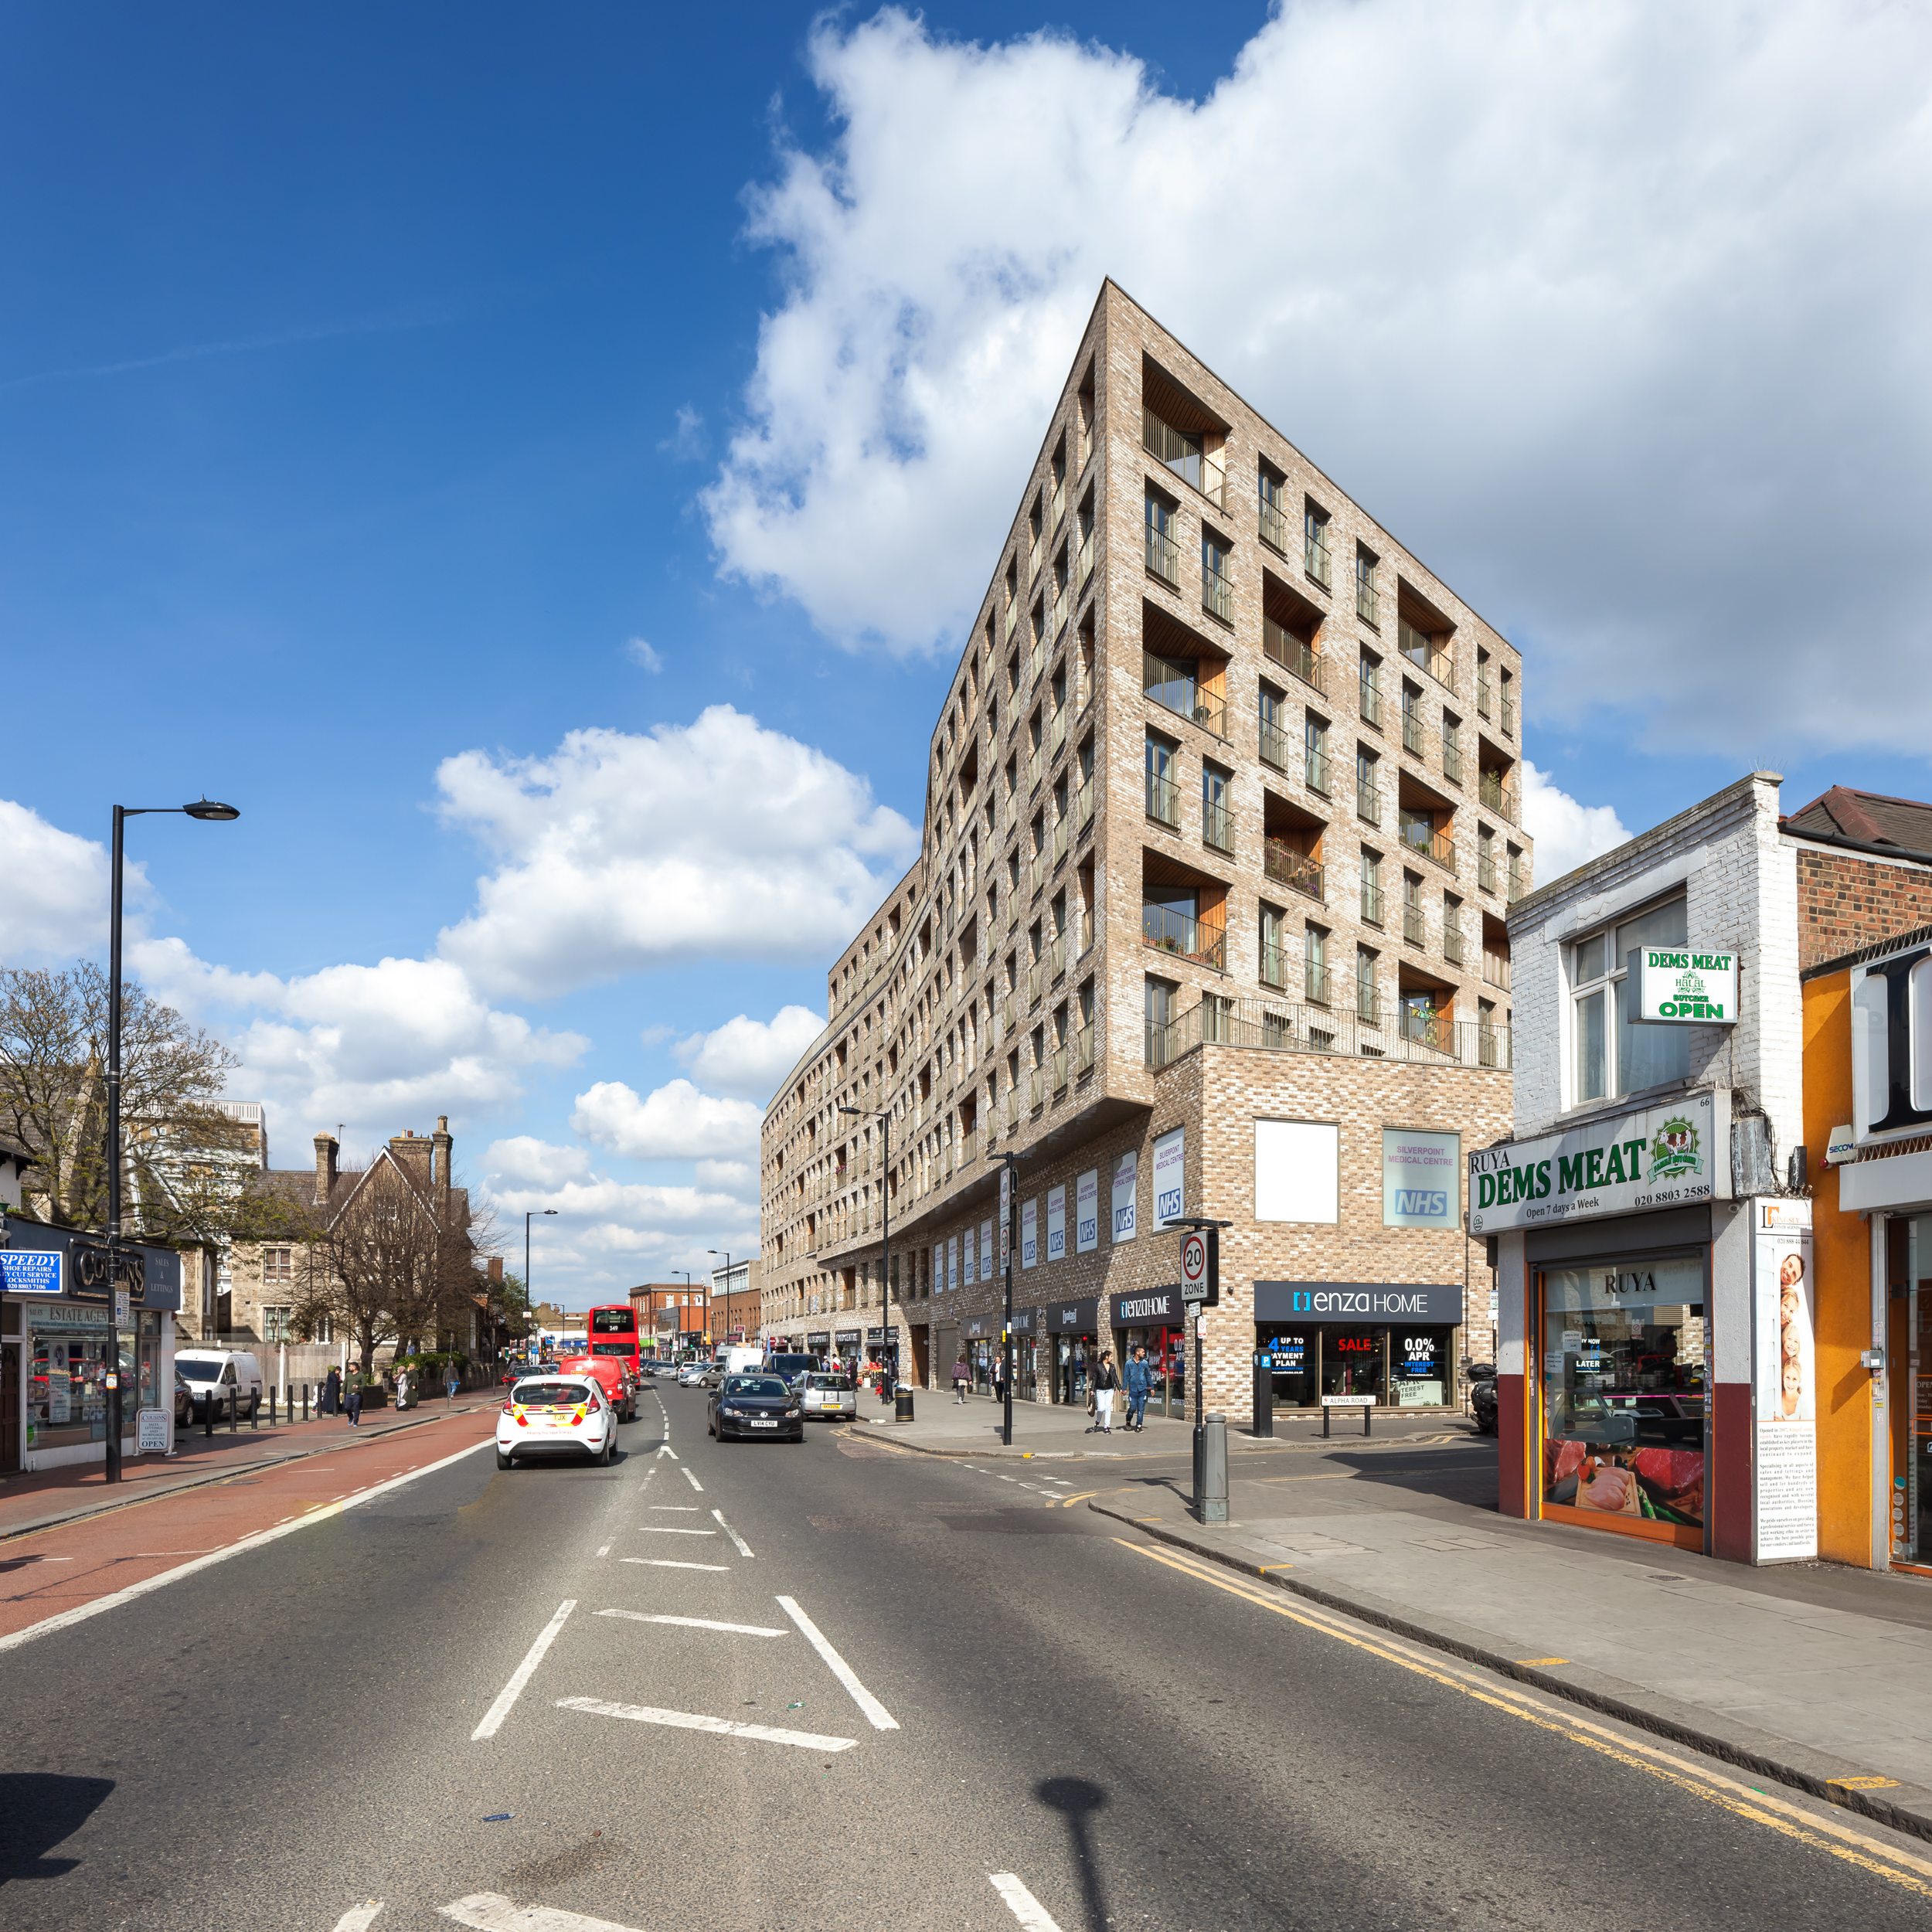 Pano_8440_8445-Edit - 050418_Hawkins_Brown_Tottenham - Website.jpg